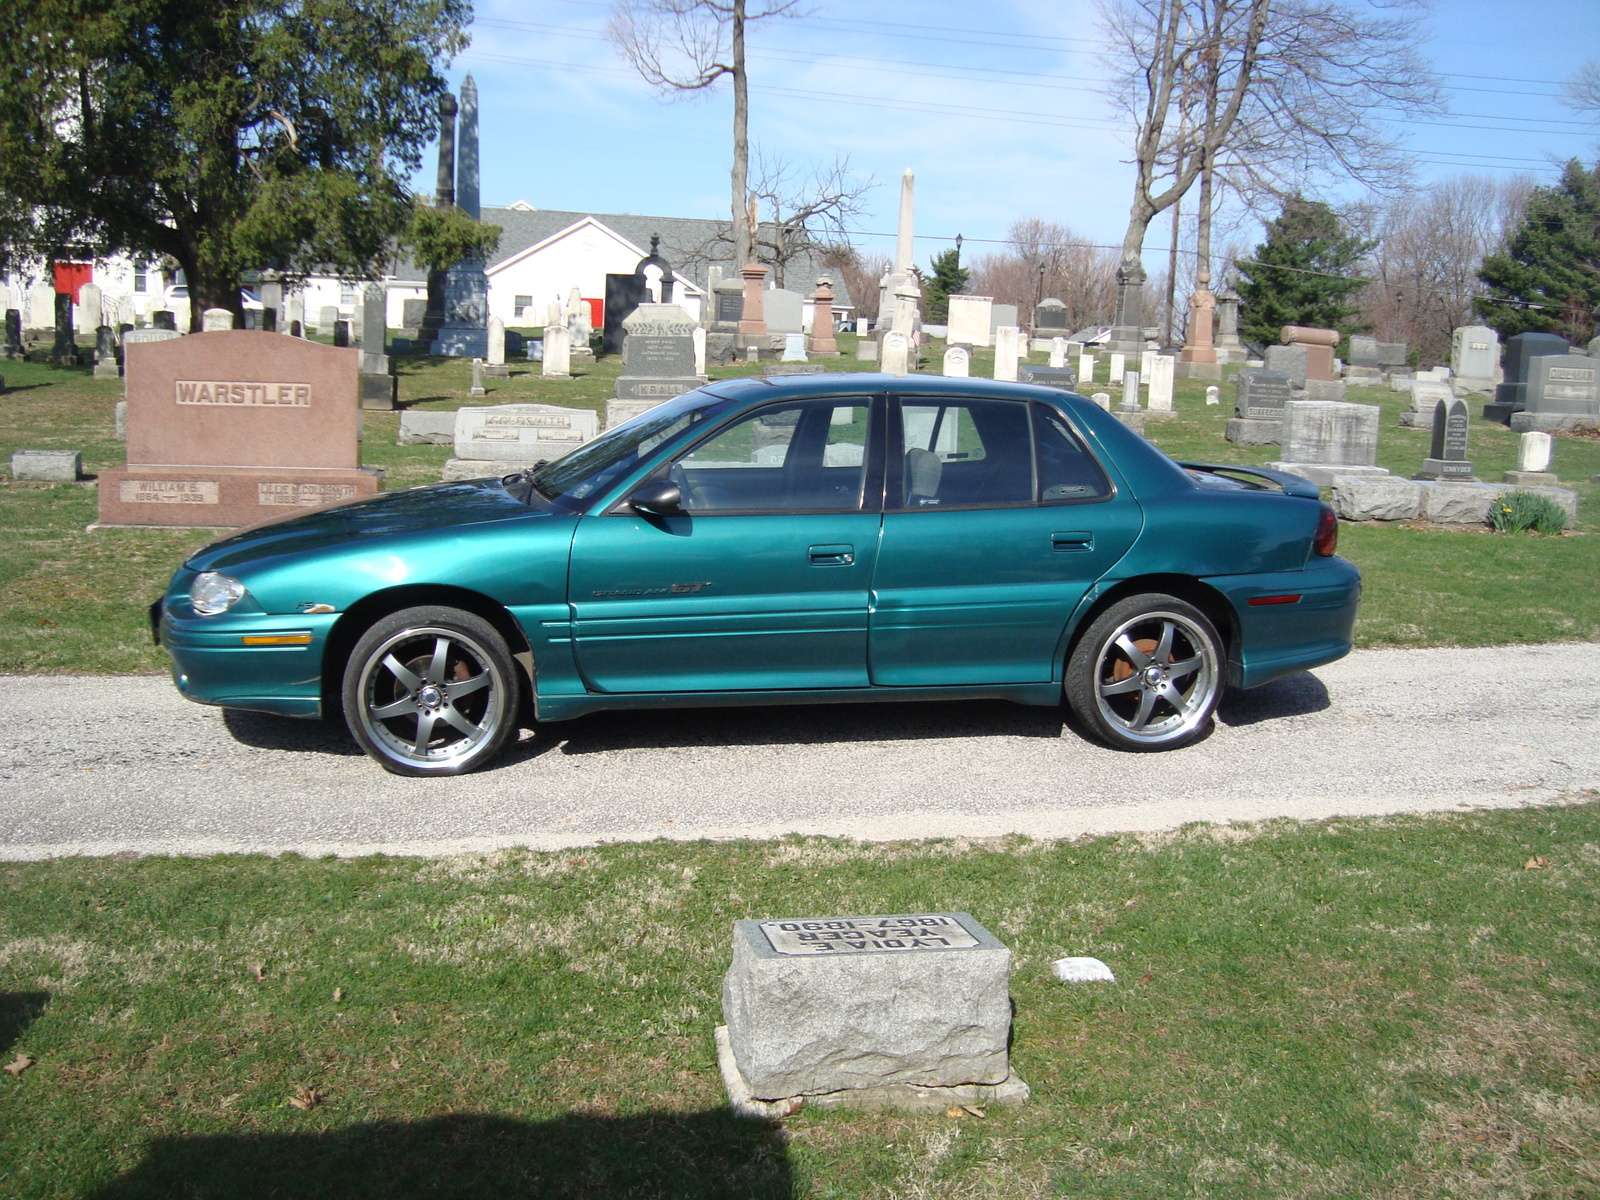 1997 Pontiac Grand Am #7 Pontiac Grand Am #7